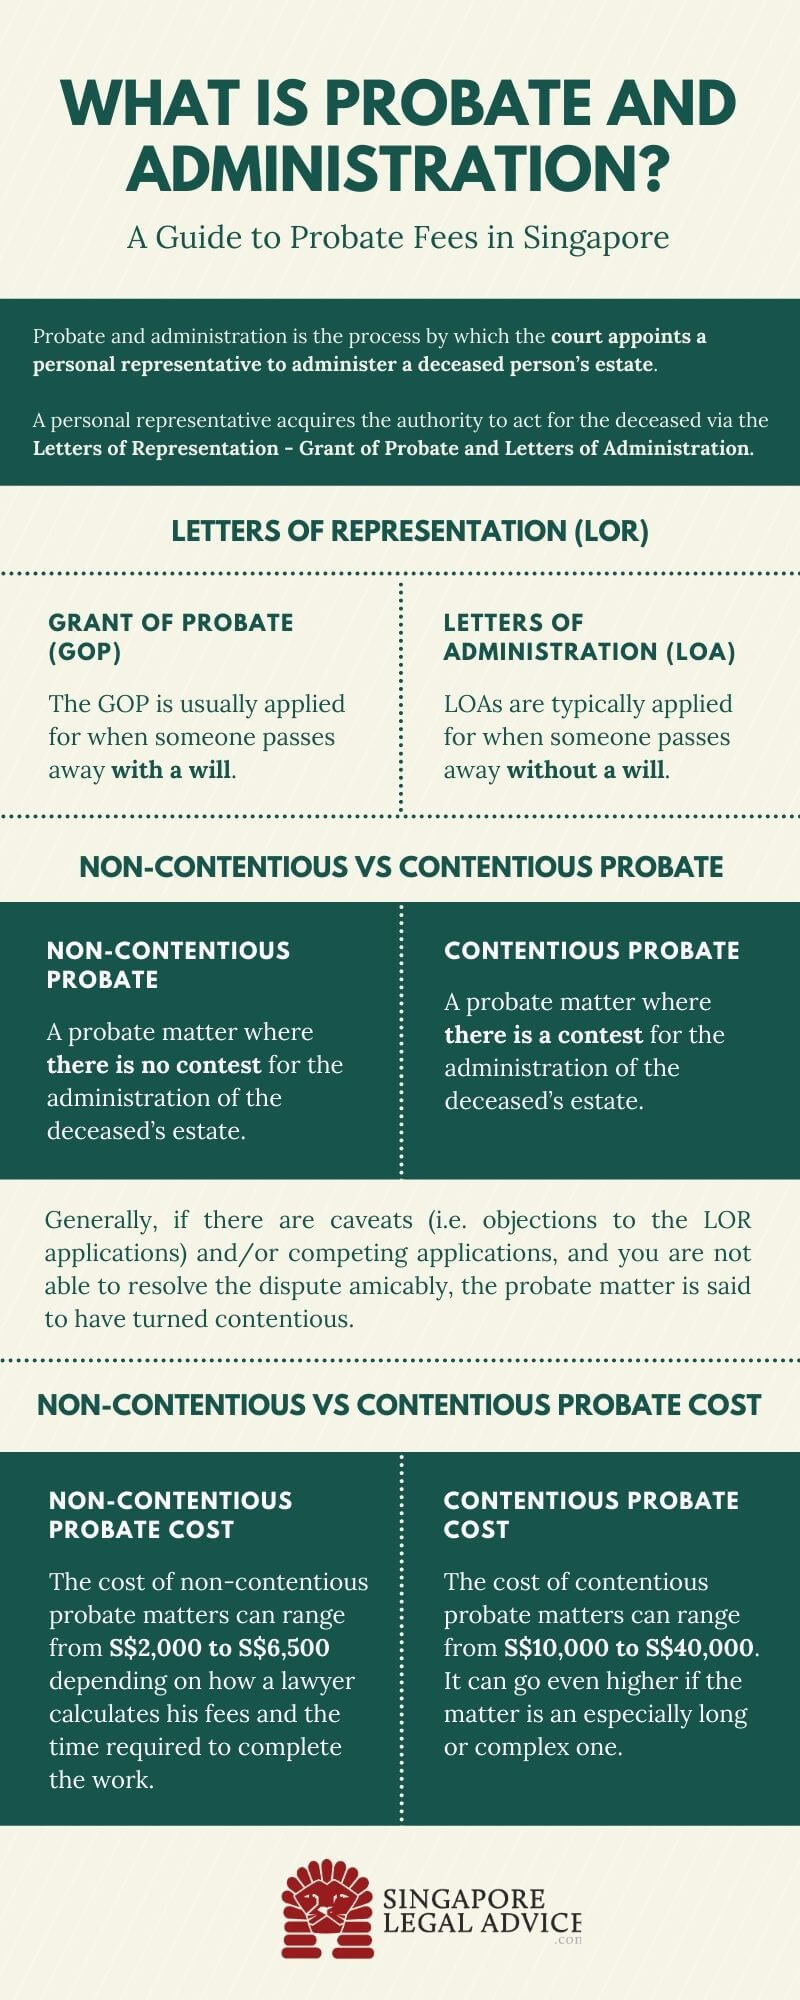 infographic for probate and administration fees in Singapore